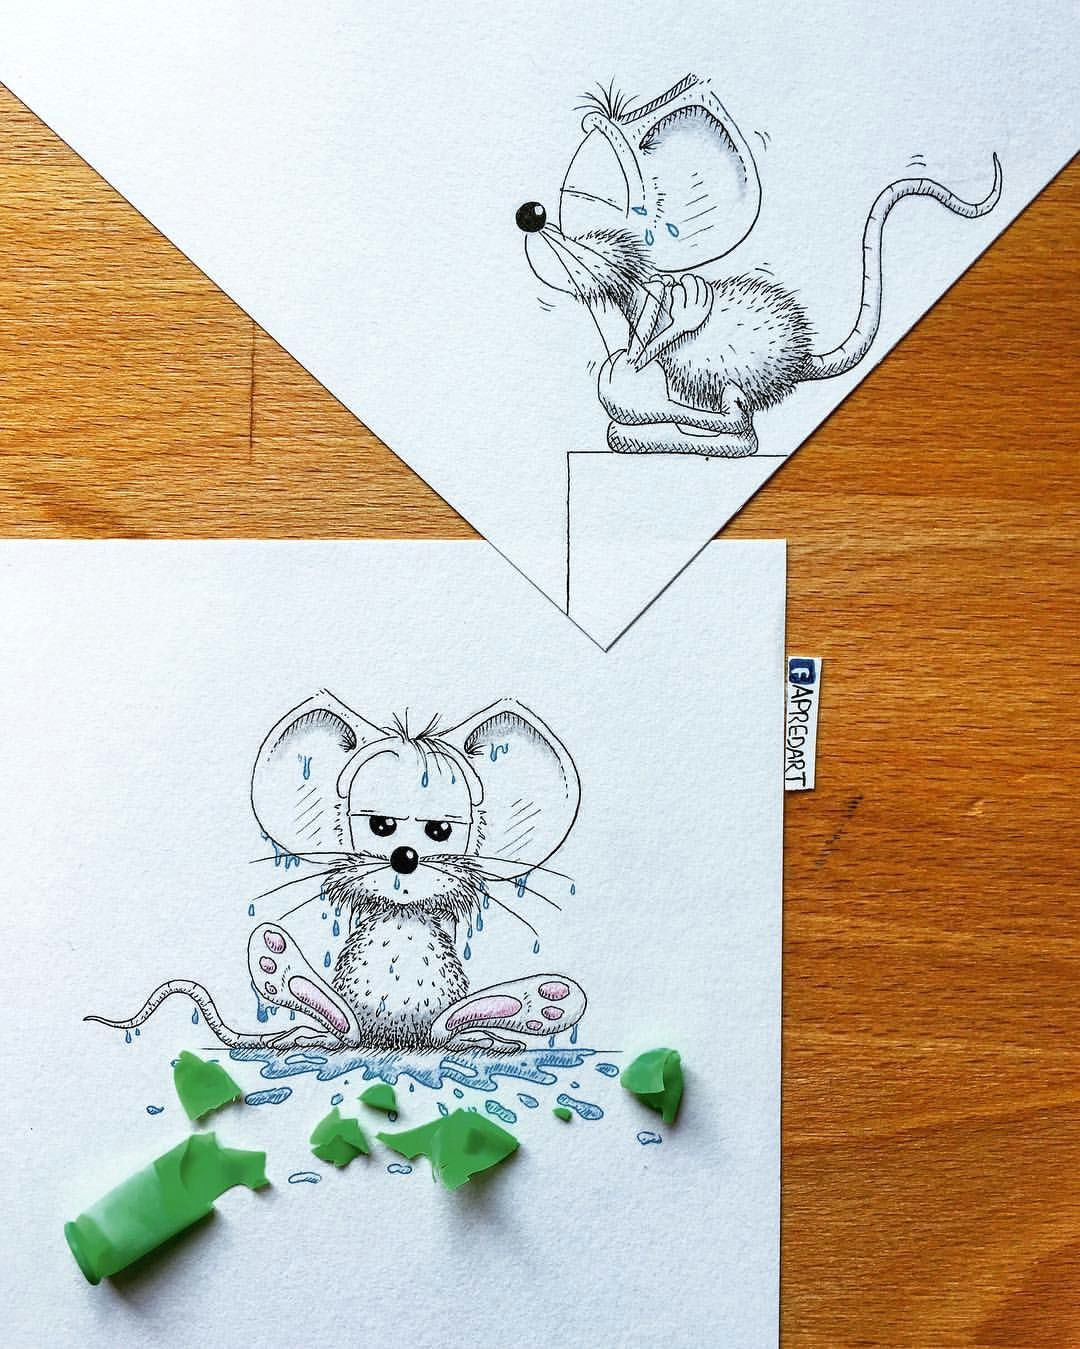 pin by harshita on rat in 2018 pinterest drawings art and creative sketches